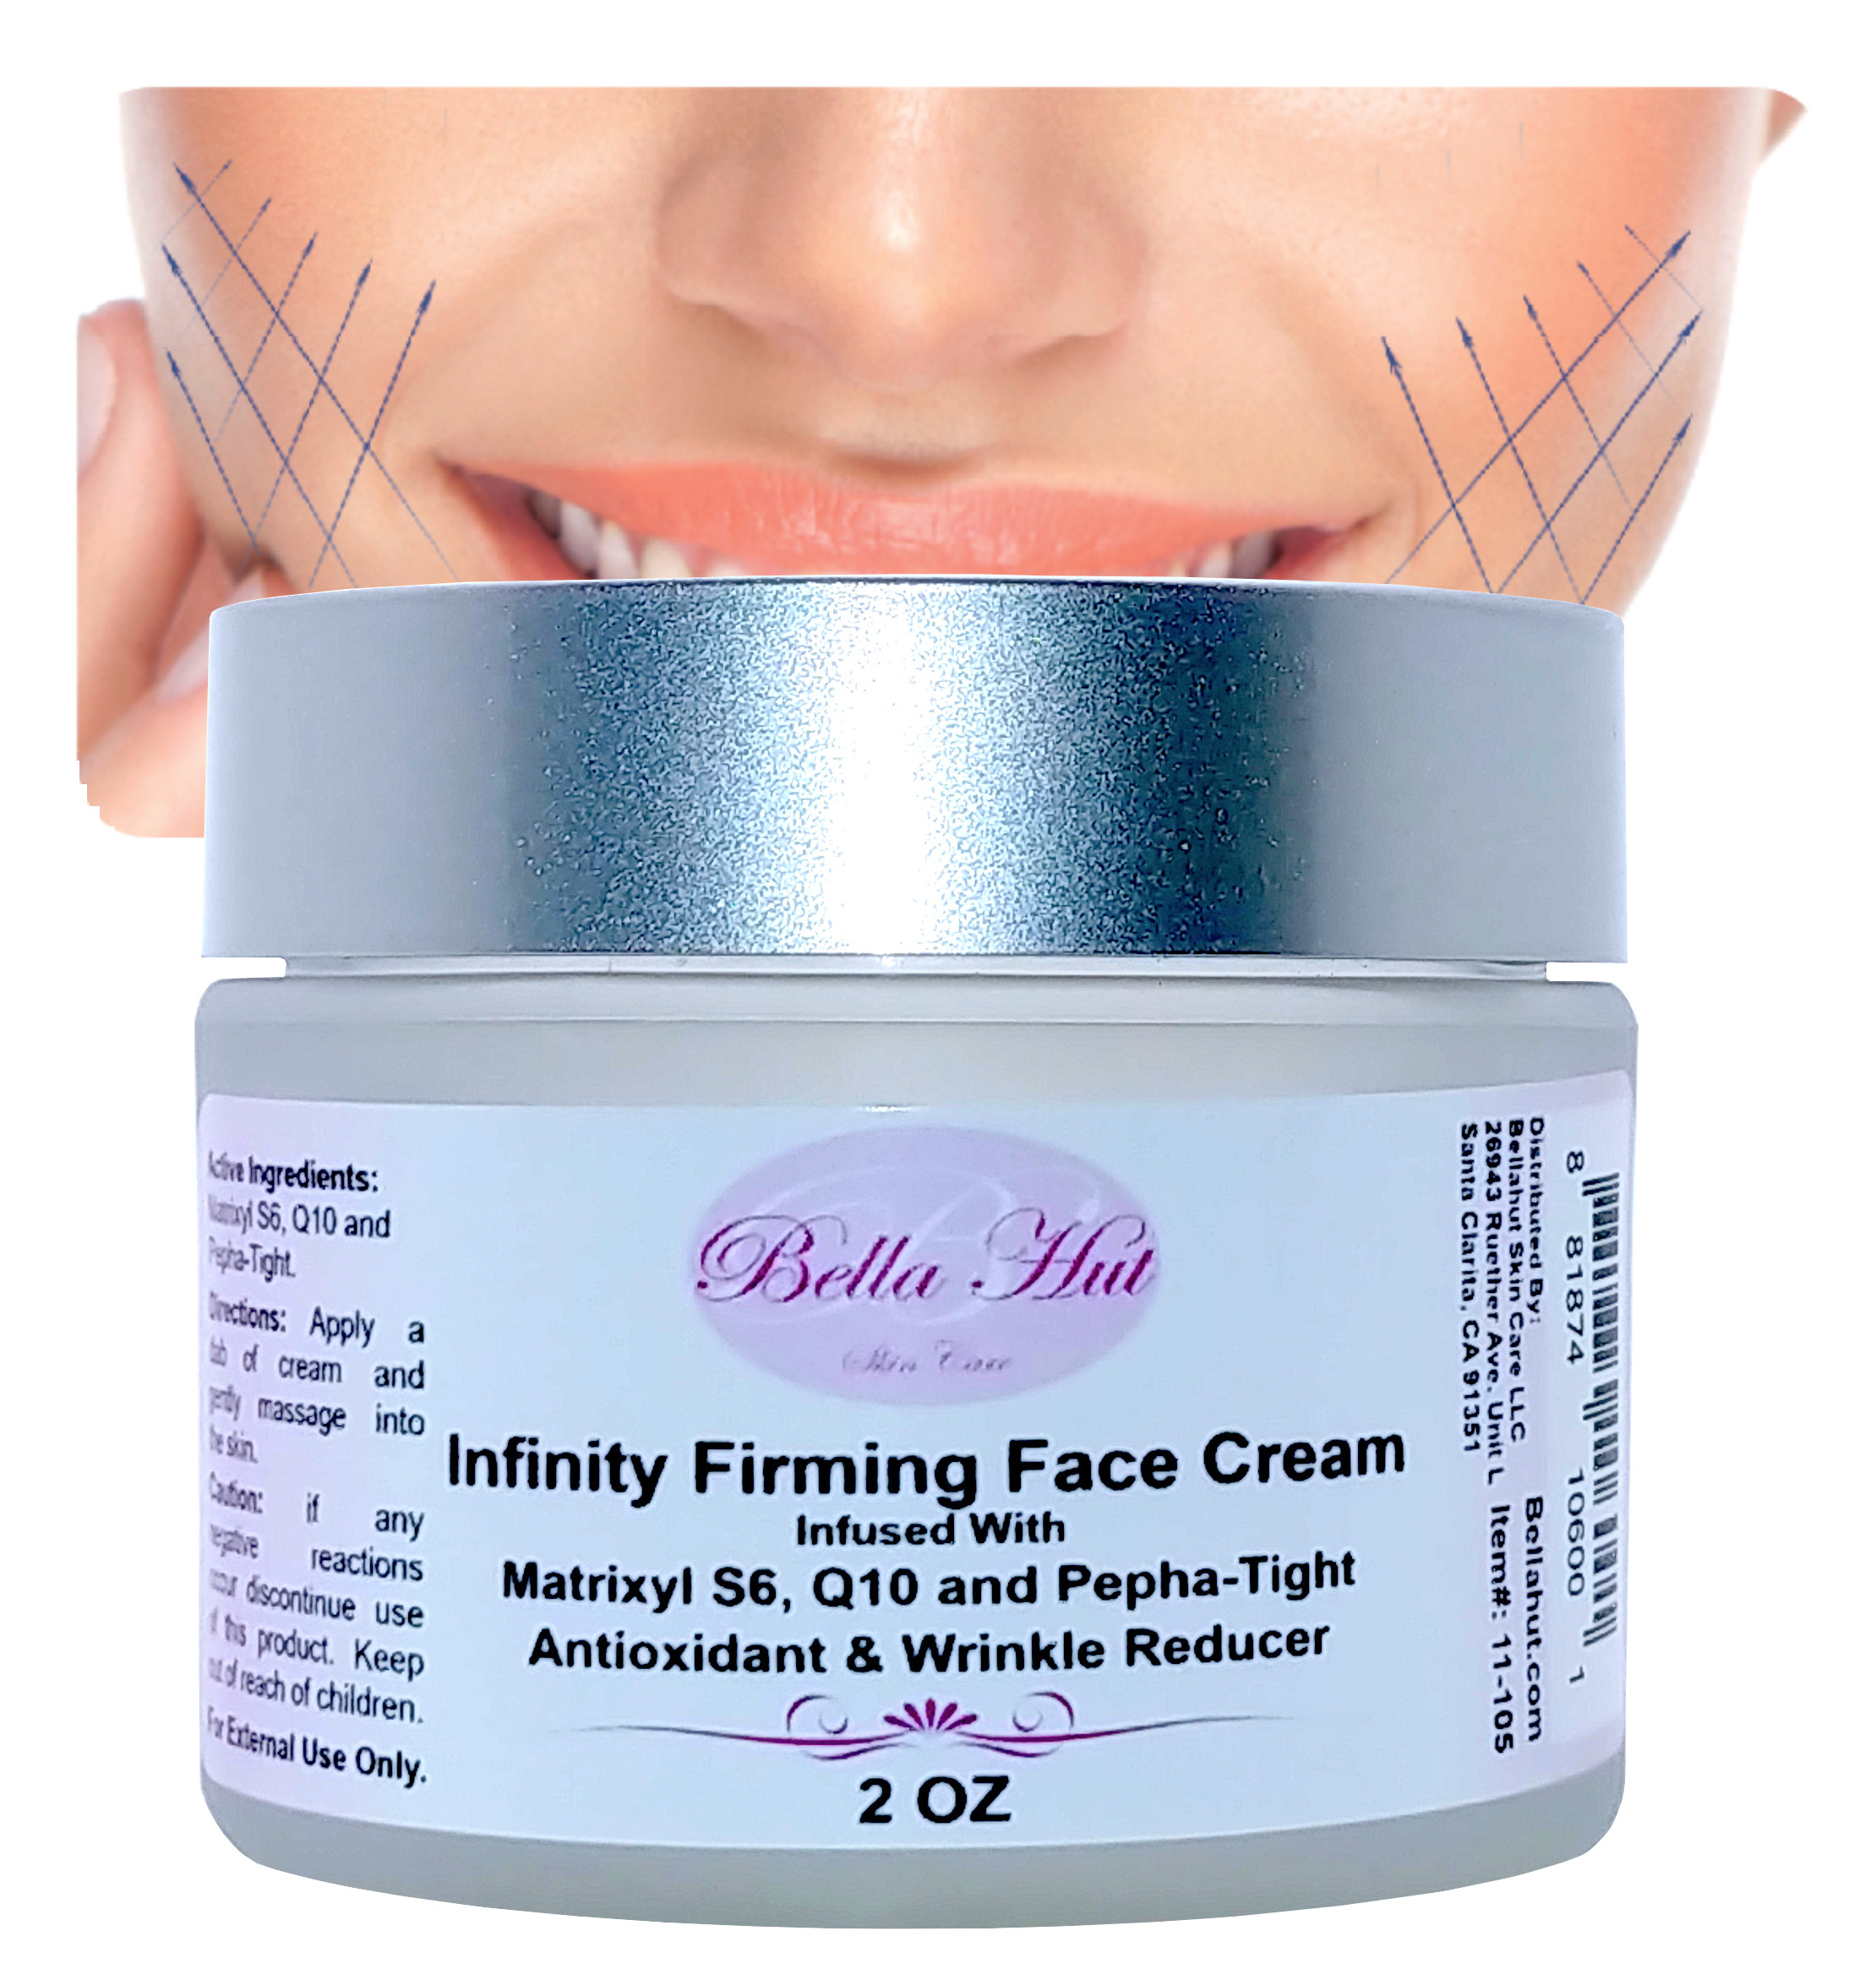 Anti Aging Cream with Matrixyl S6, Q10 And Pepha-Tight